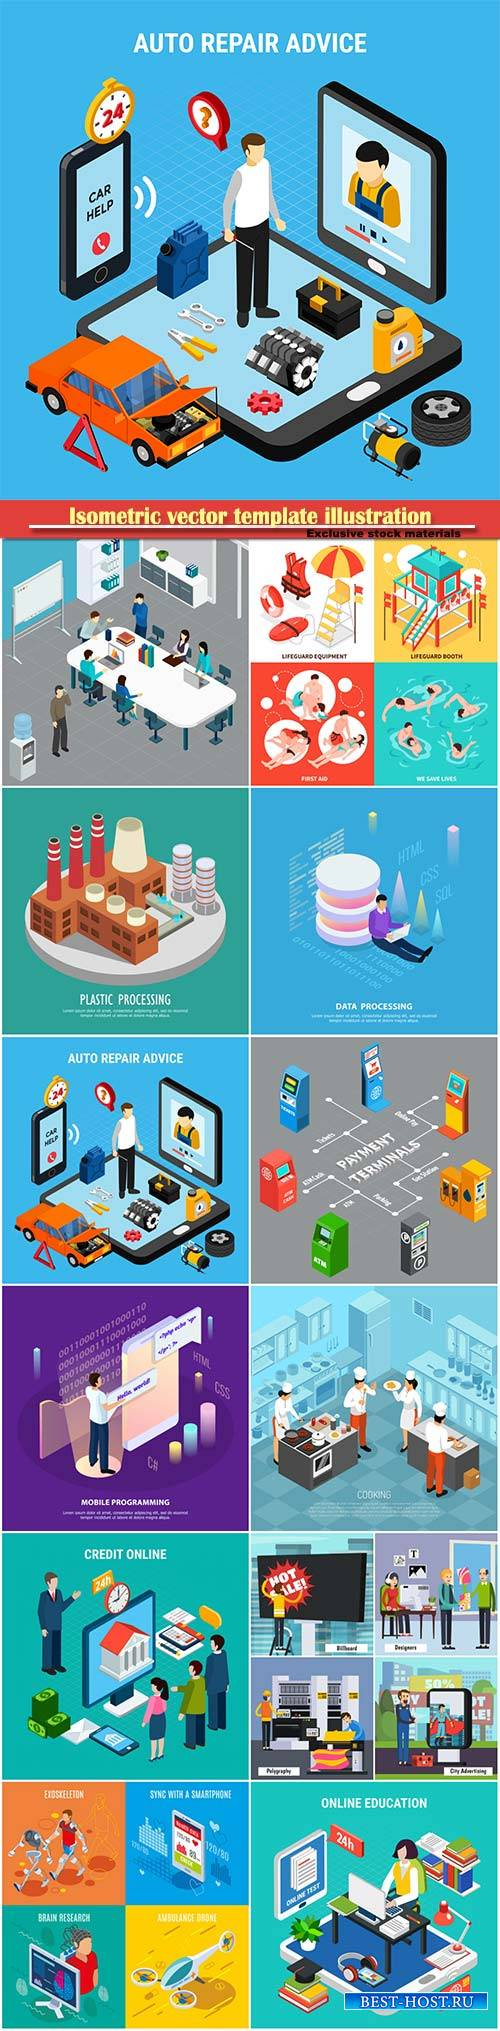 Isometric vector template illustration # 11